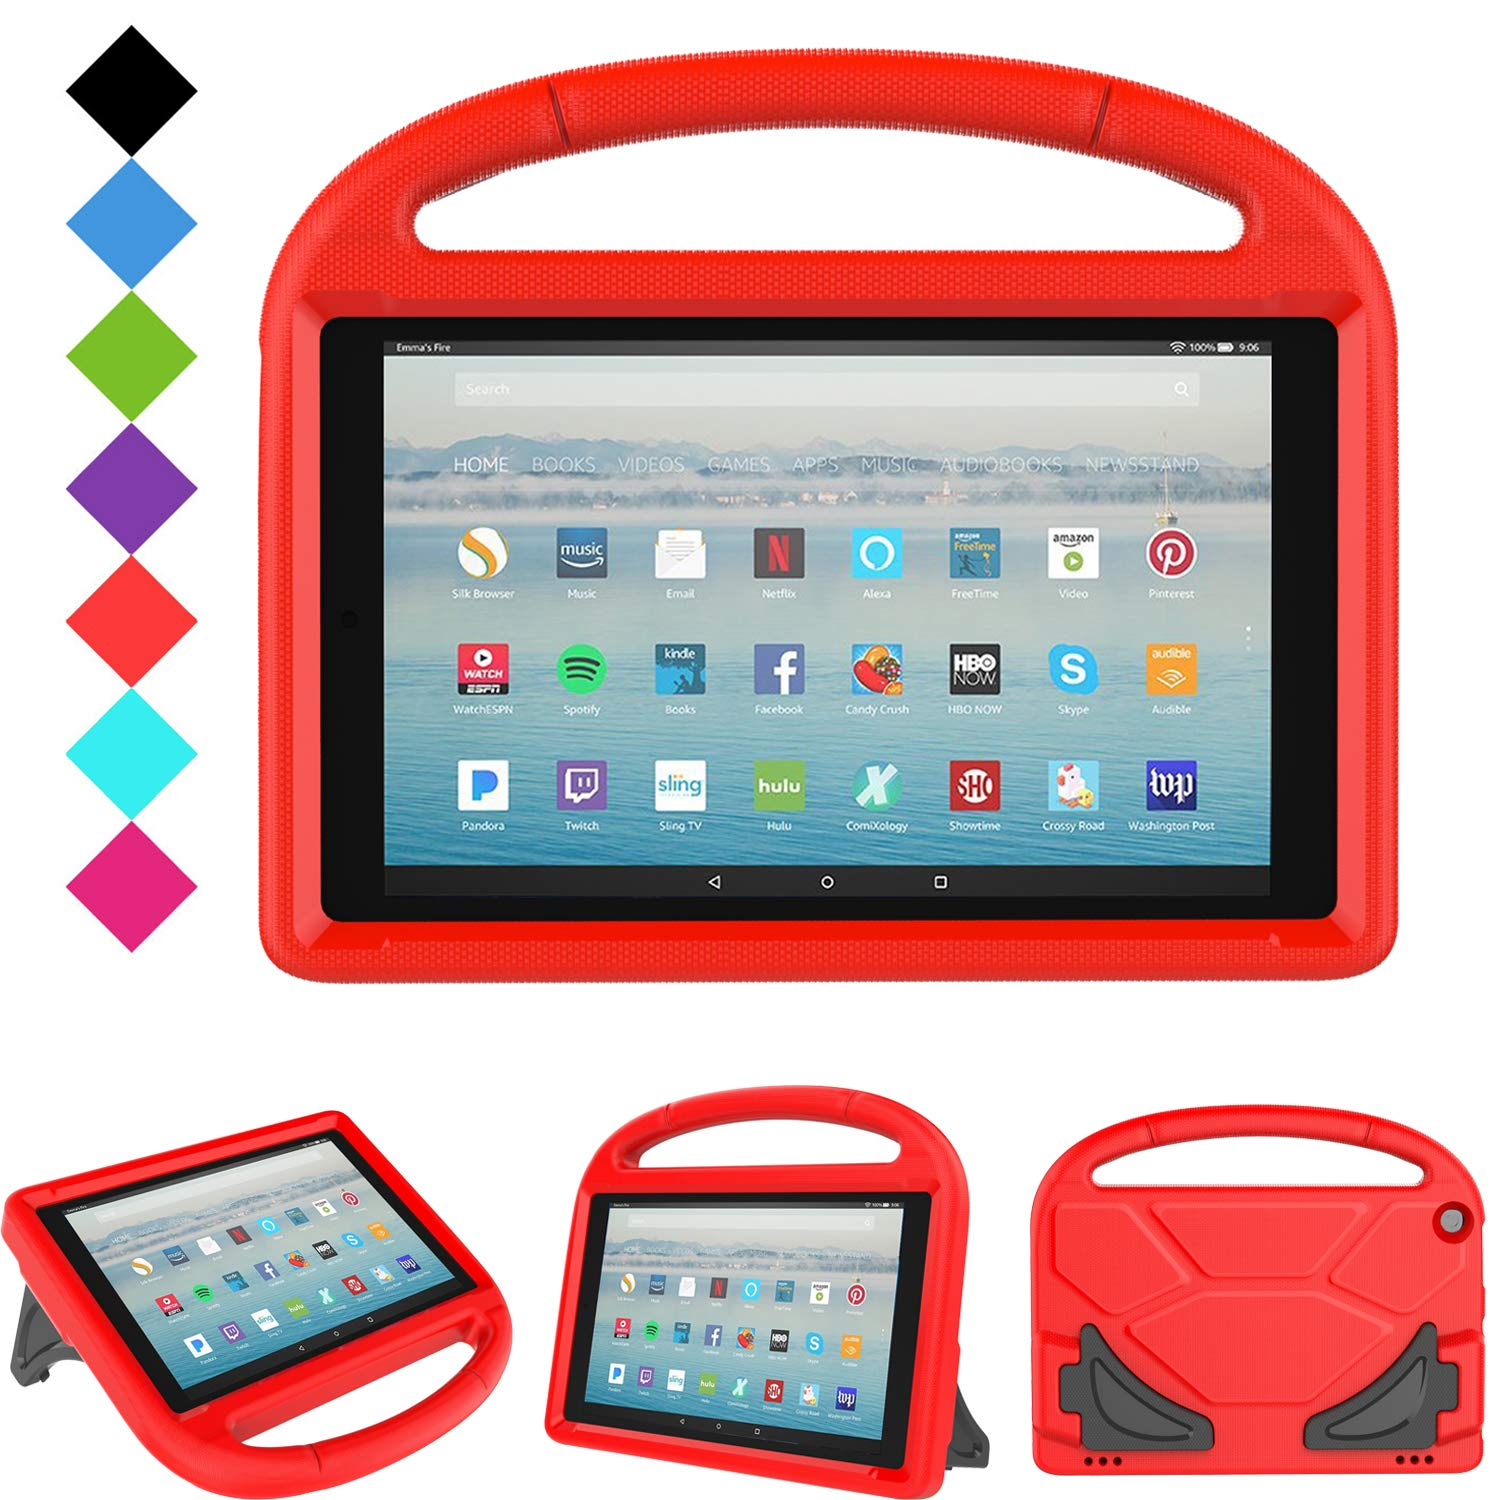 All-New Fire HD 10 2019/2017 Tablet Case - TIRIN Light Weight Shock Proof Handle Stand Kids Friendly Case for Amazon Fire HD 10.1 Inch Tablet (9th/7th Generation, 2019/2017 Release), Red